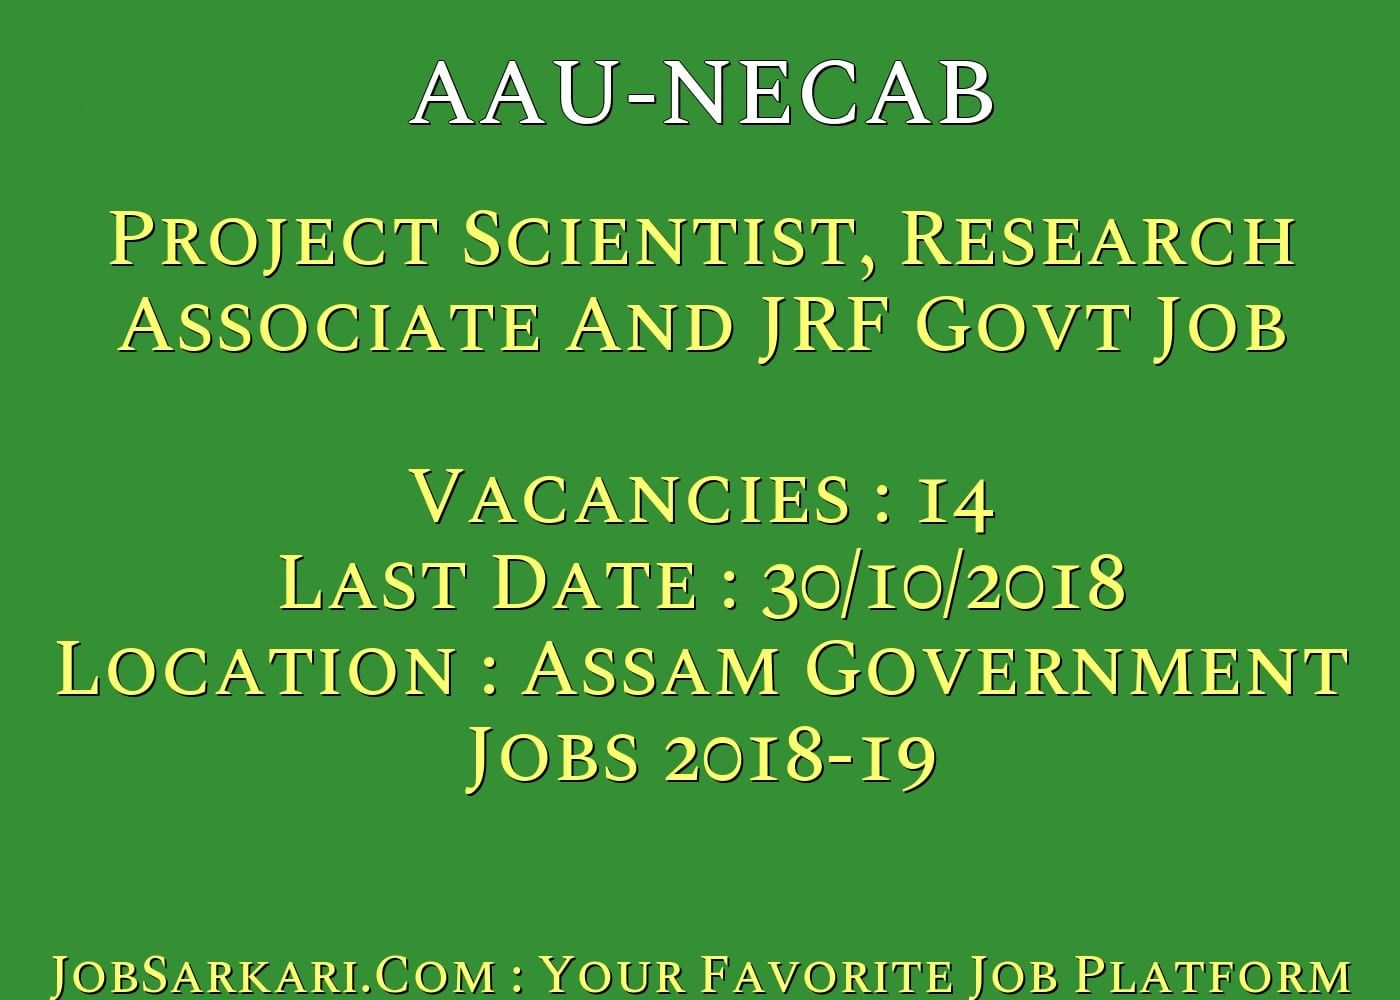 AAUNECAB Recruitment 2018 For Project Scientist, Research